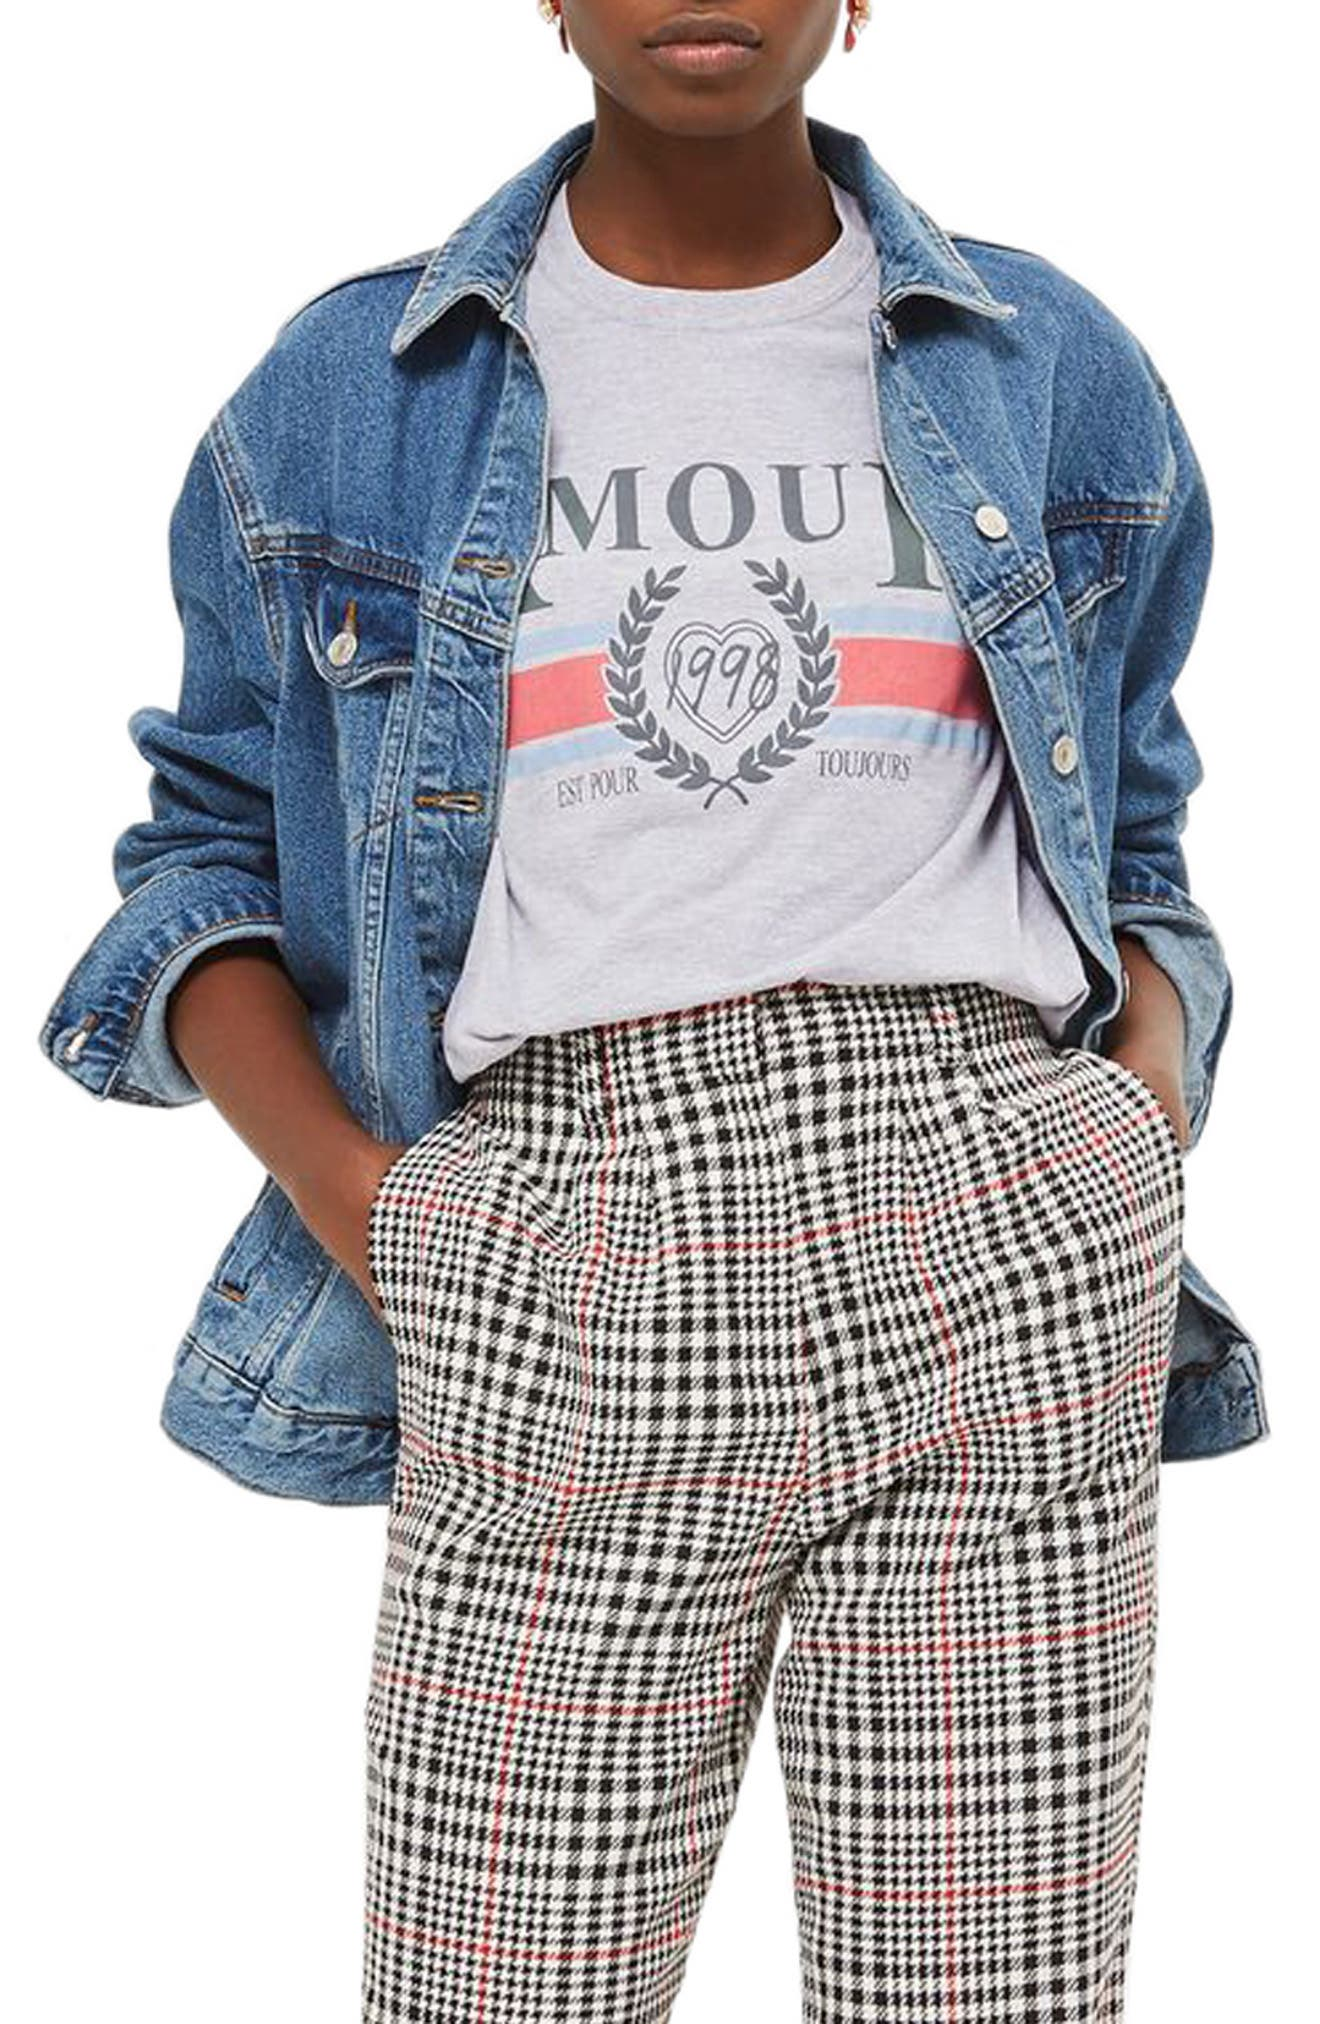 Amour Graphic Tee,                             Alternate thumbnail 3, color,                             Grey Multi